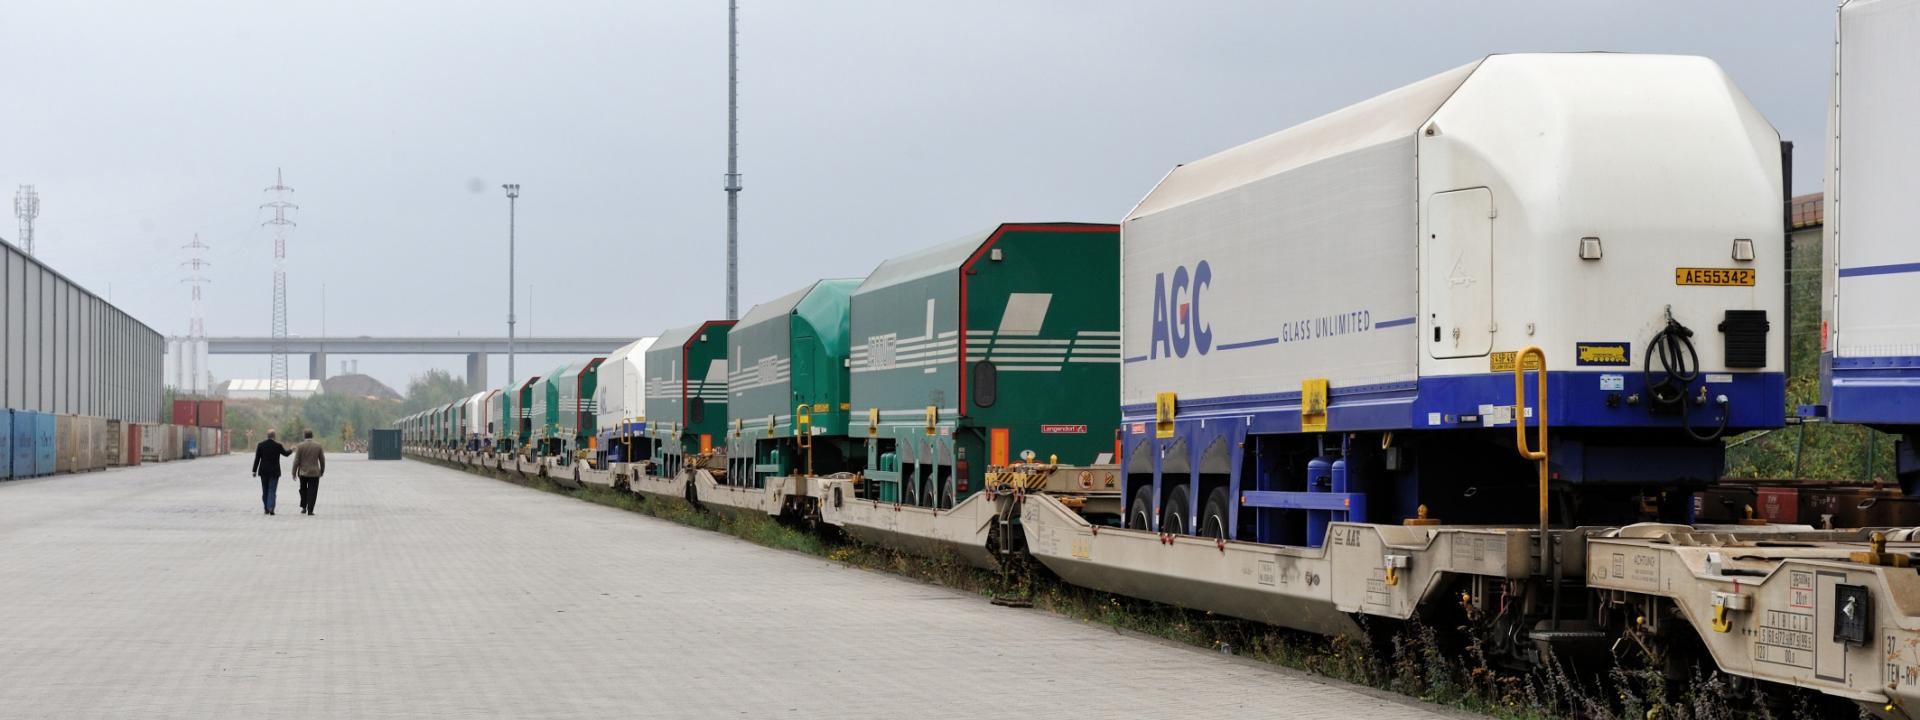 AGC glass transport train